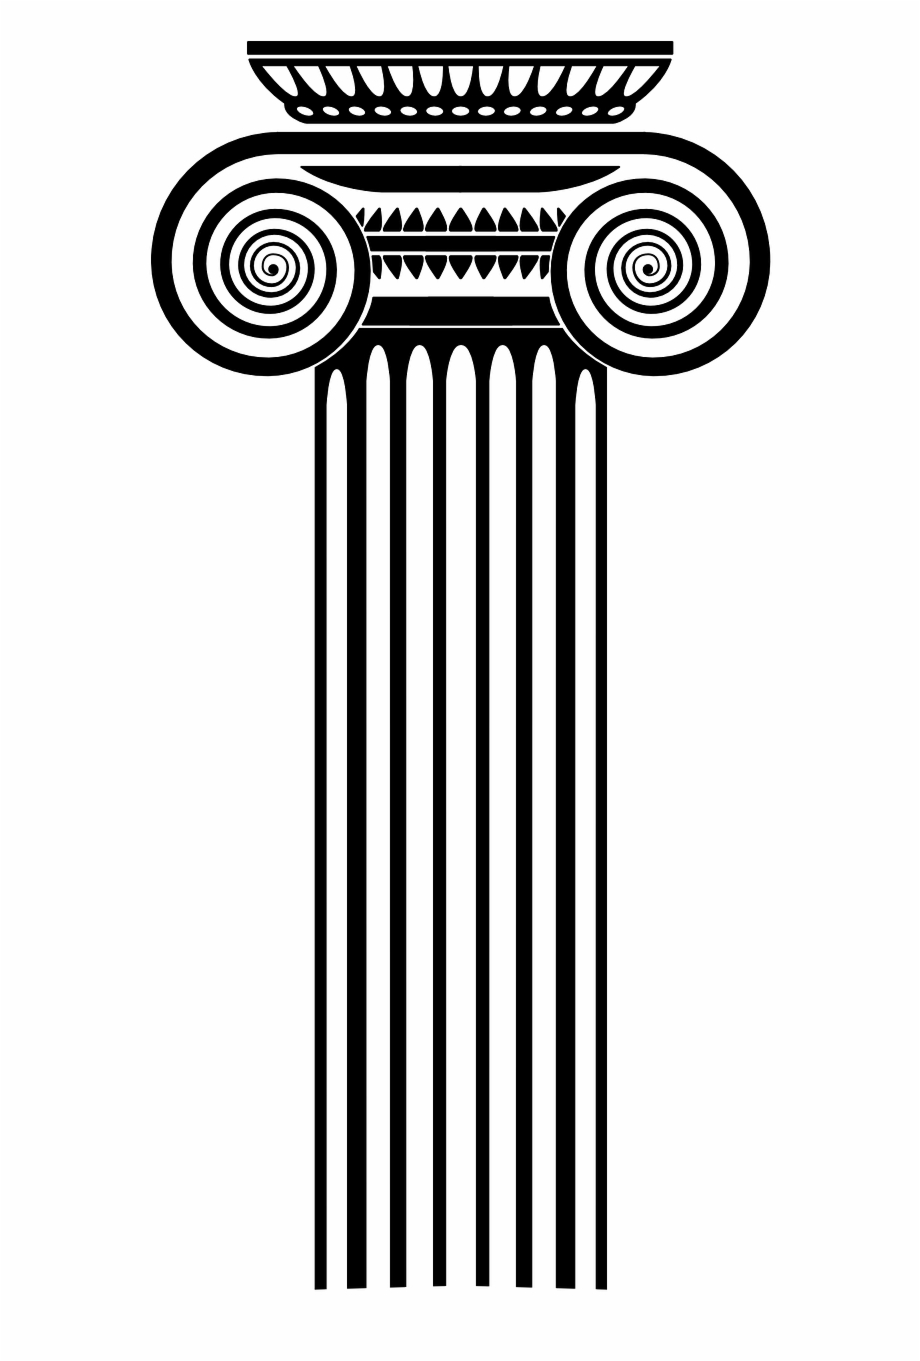 Pillar Roman Column Ancient Png Image.